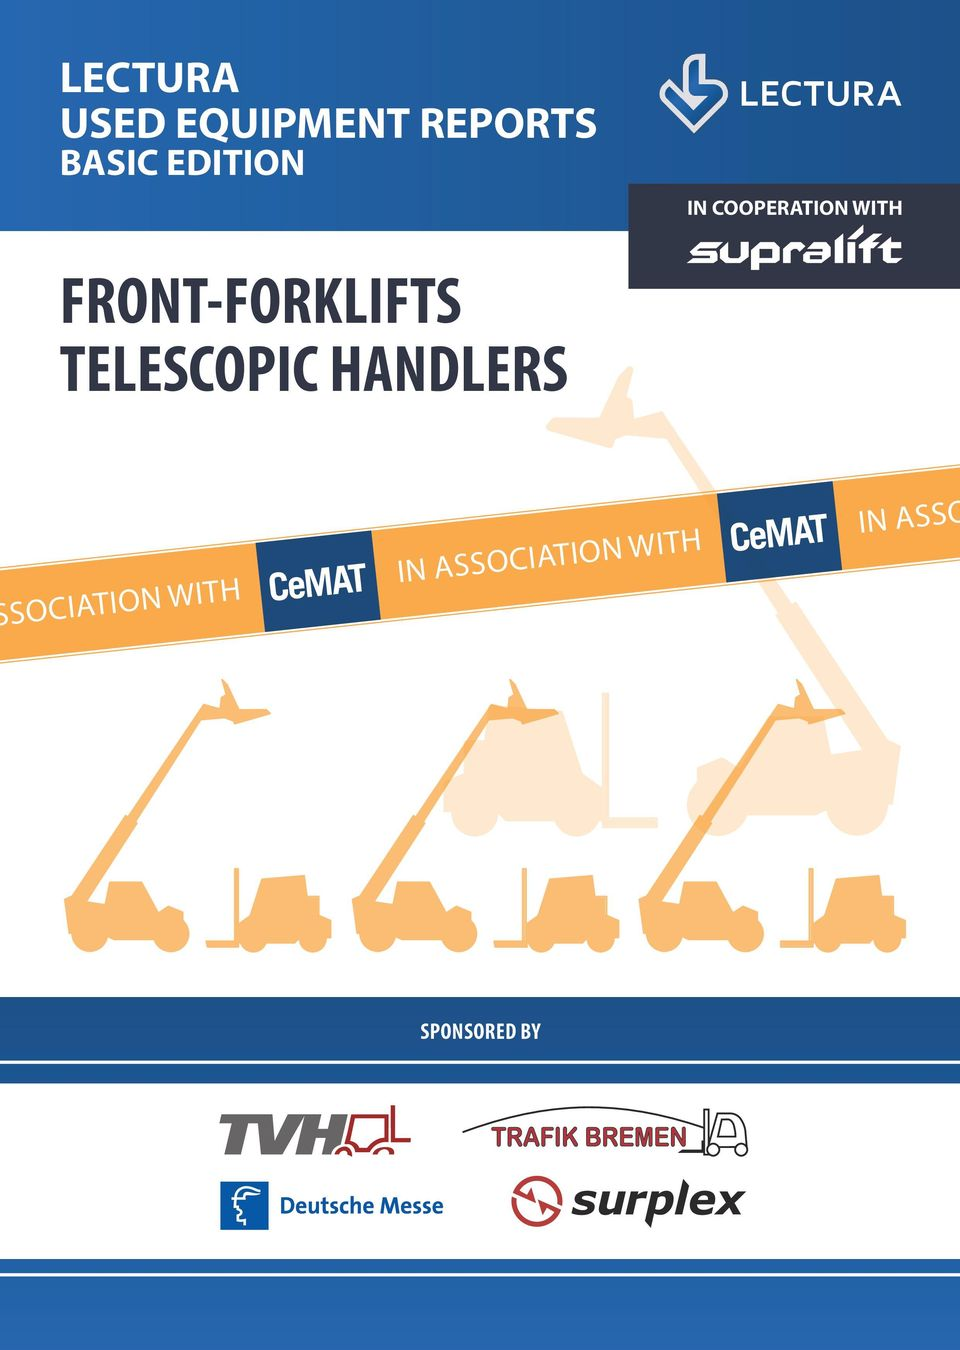 FRONT-FORKLIFTS TELESCOPIC HANDLERS